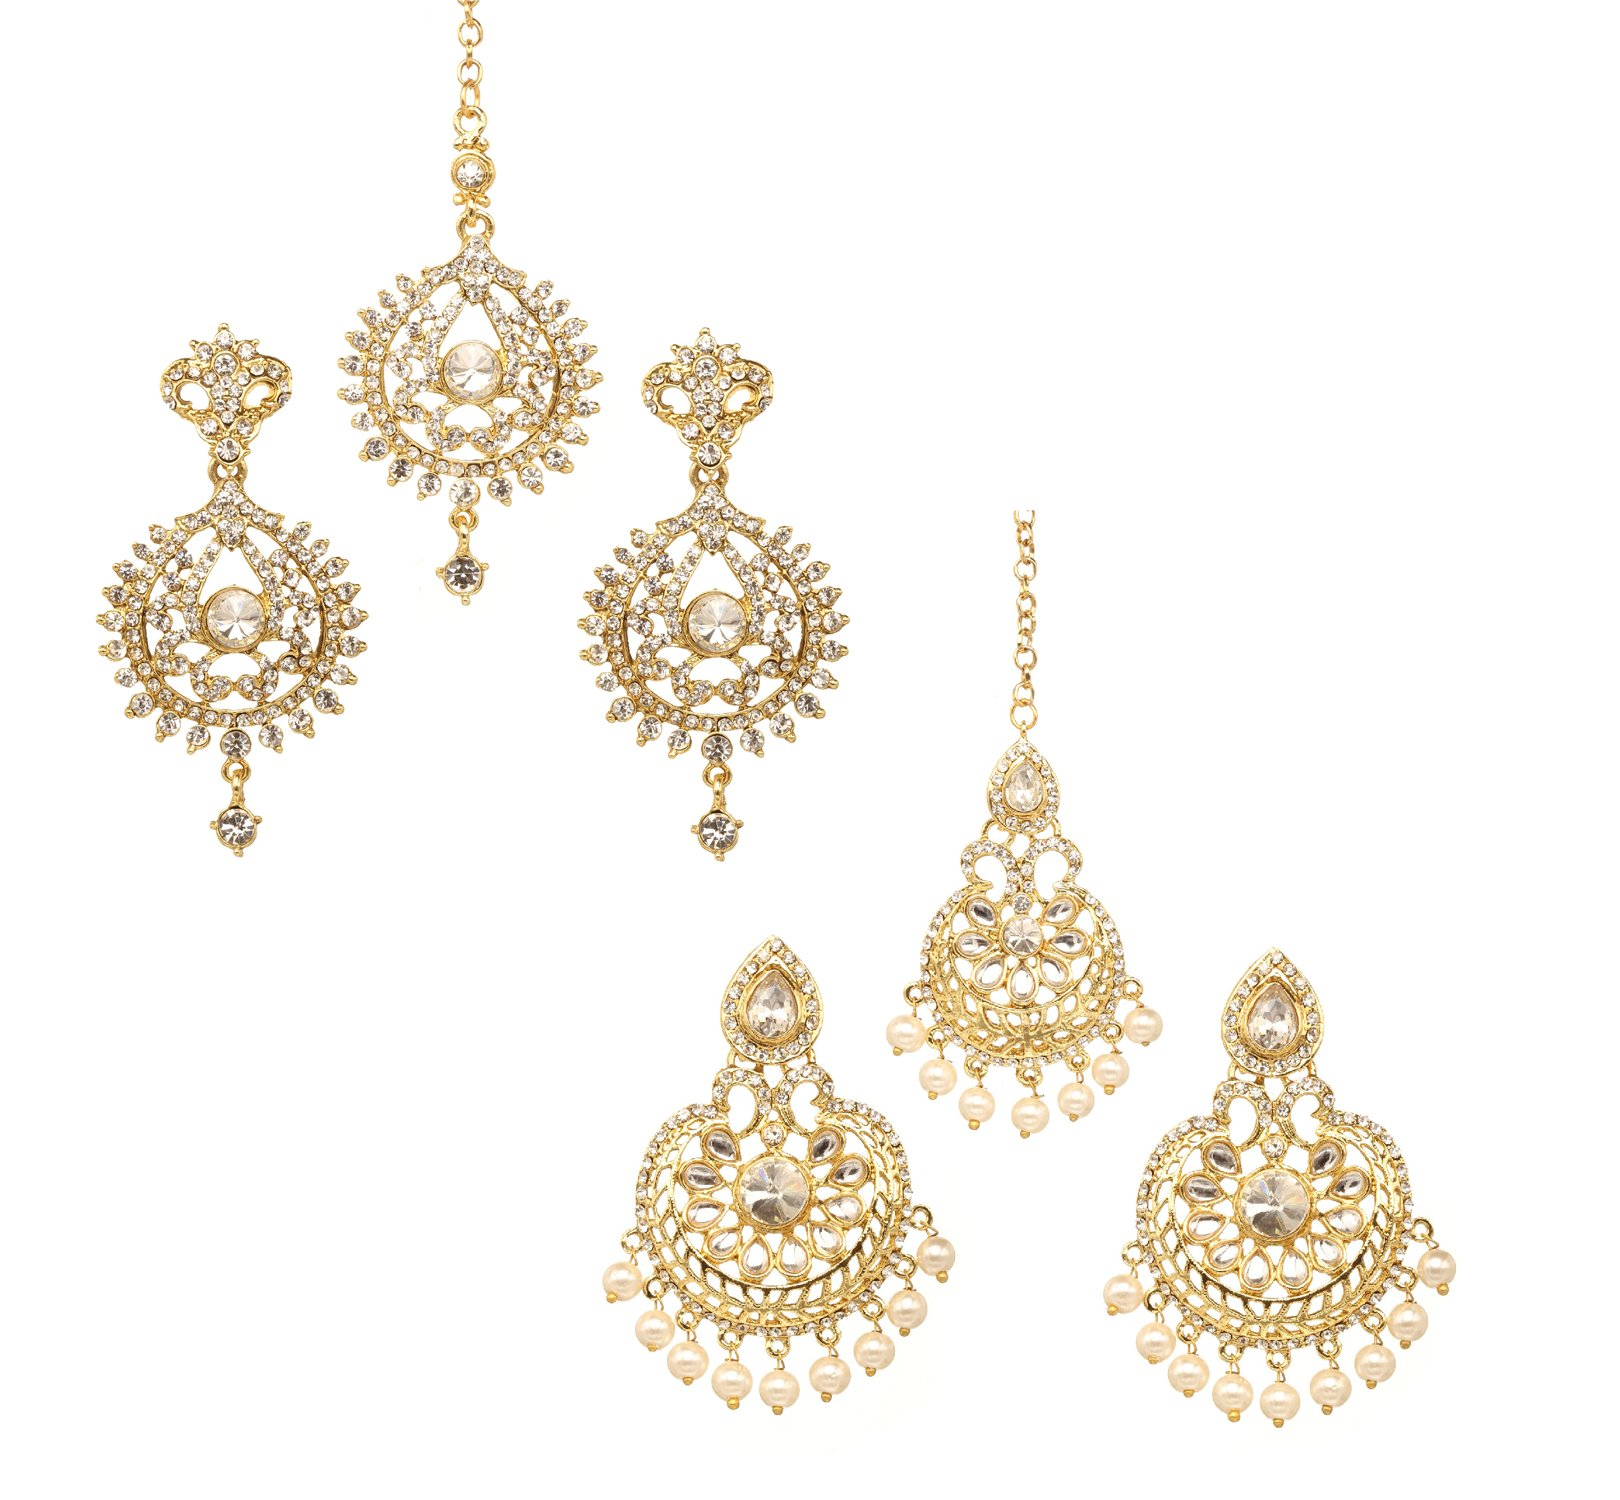 Bindhani Wedding Indian Head Maang Tika With Earring Bollywood Mang Tikka Jewelry For Women (Pack Of 2)